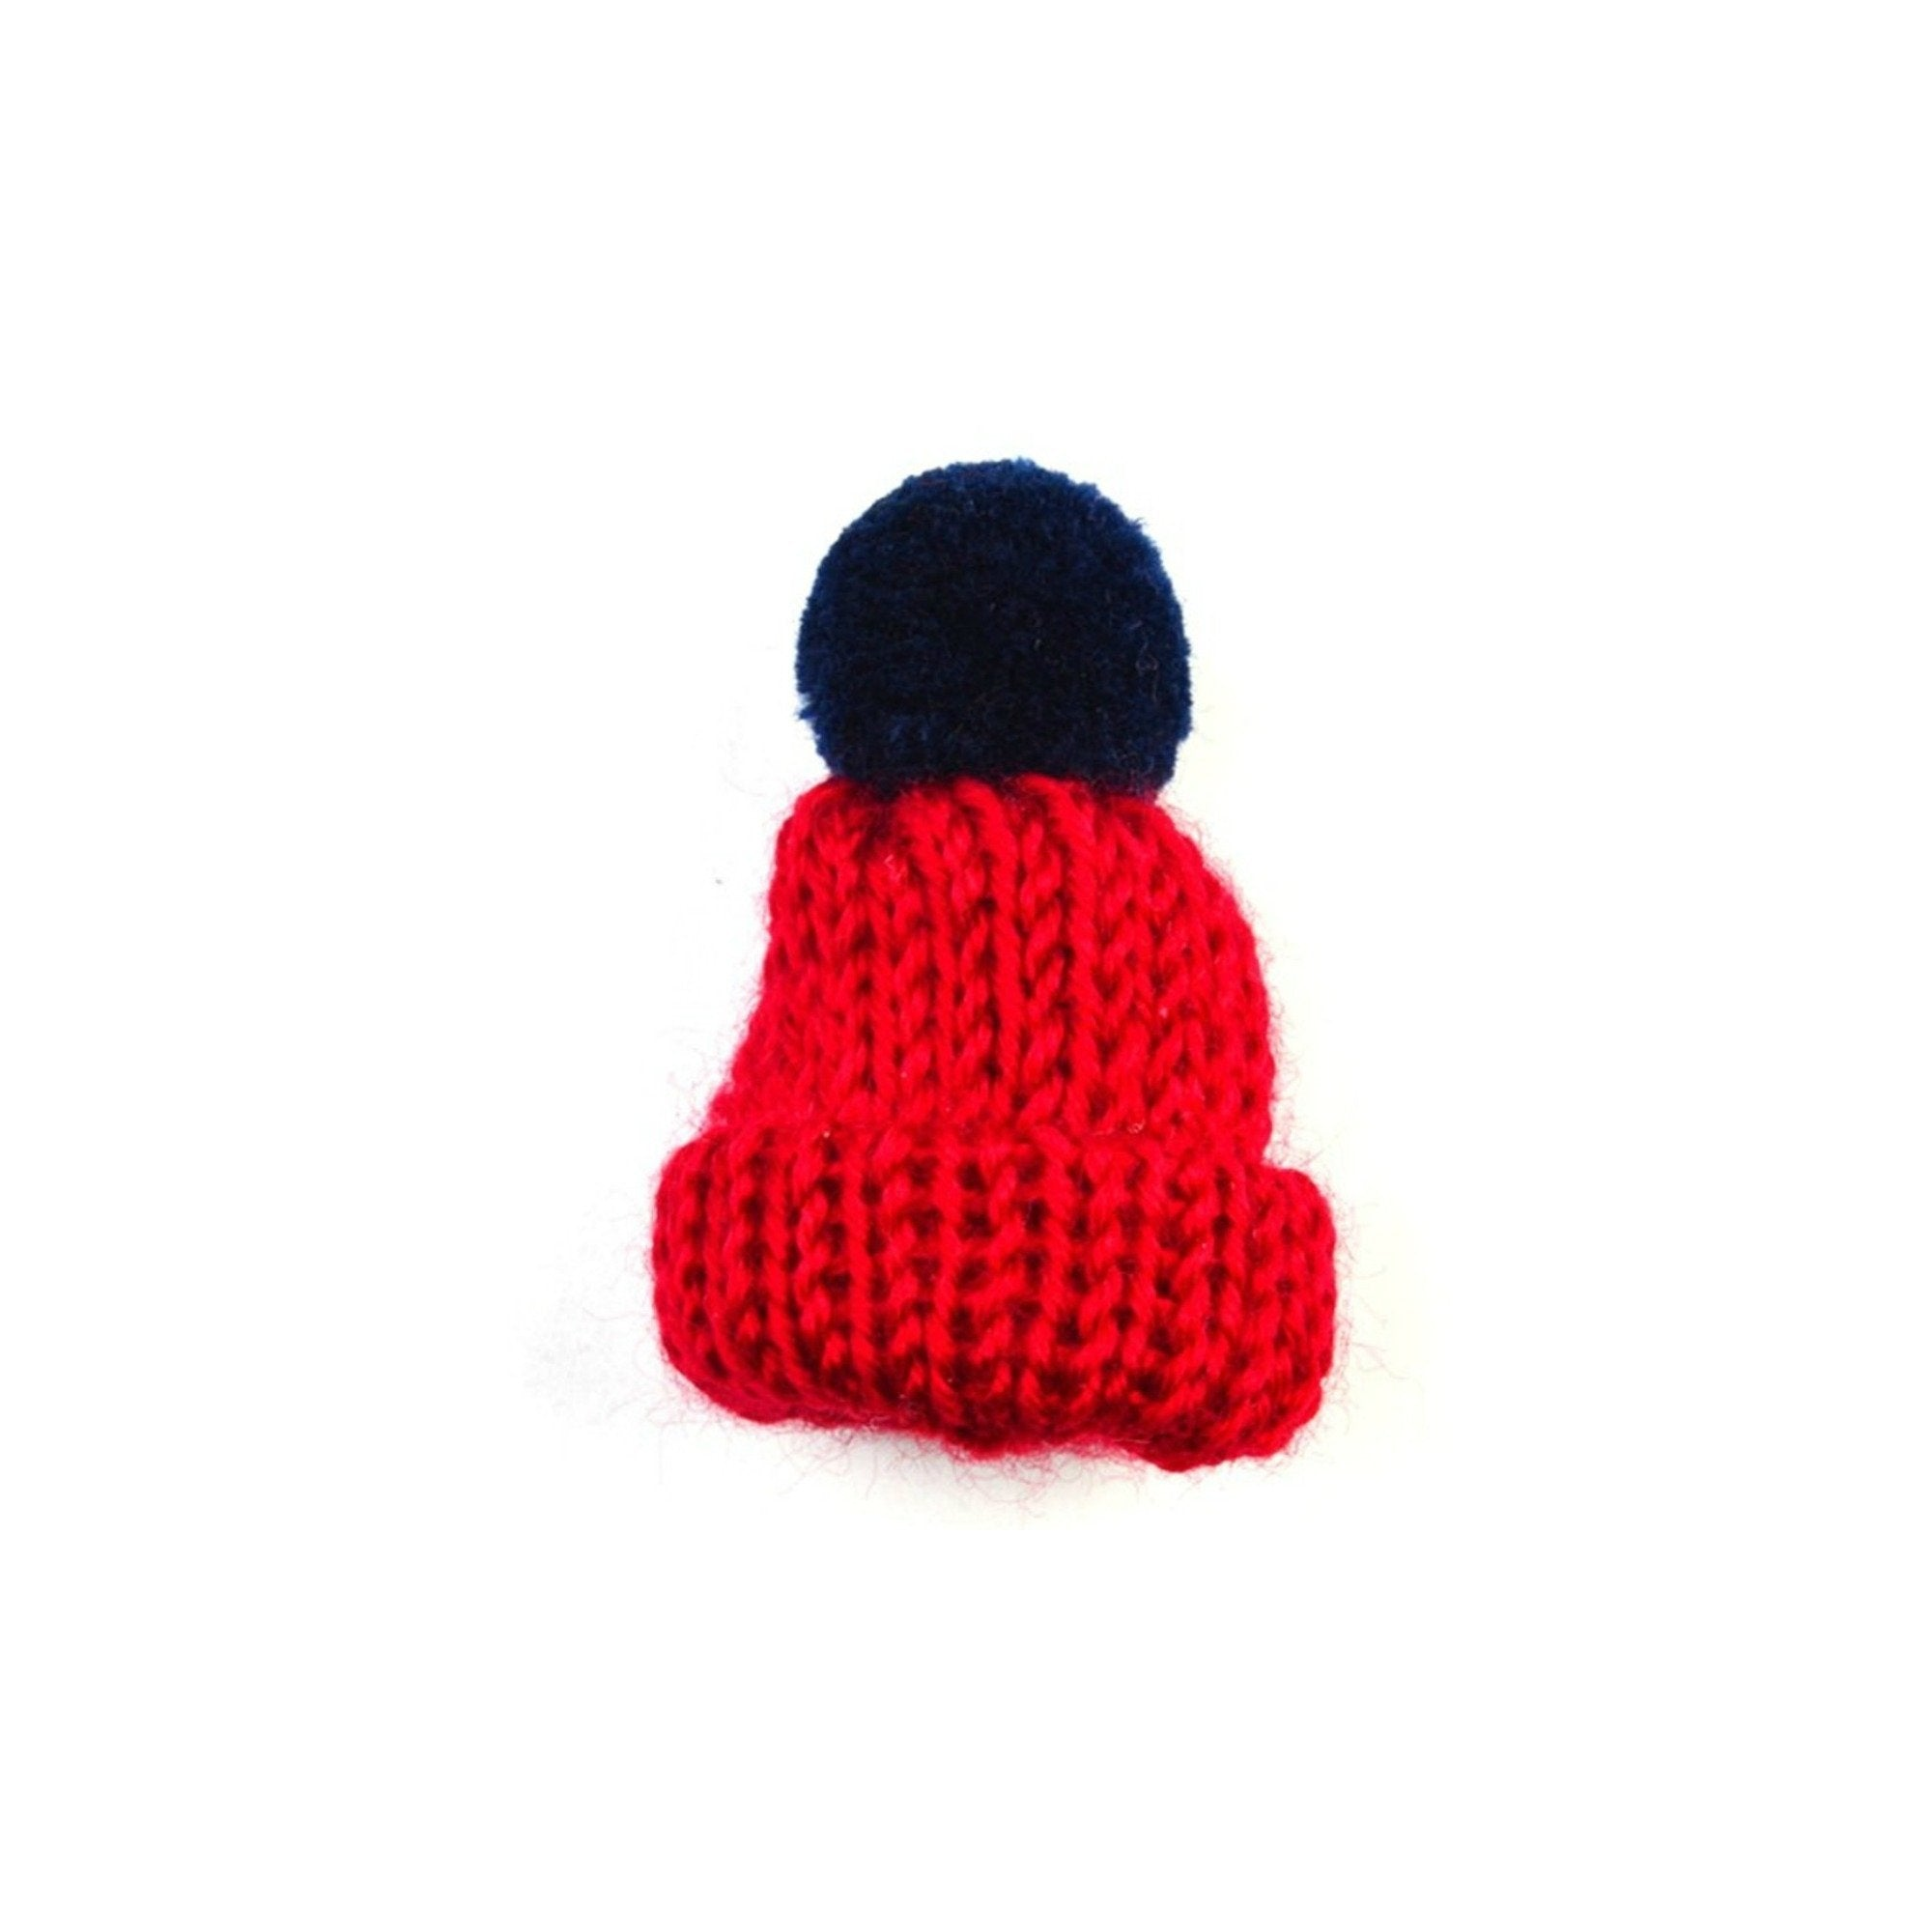 Bobble Hat Fabric Lapel Pin Badge - Minimum Mouse